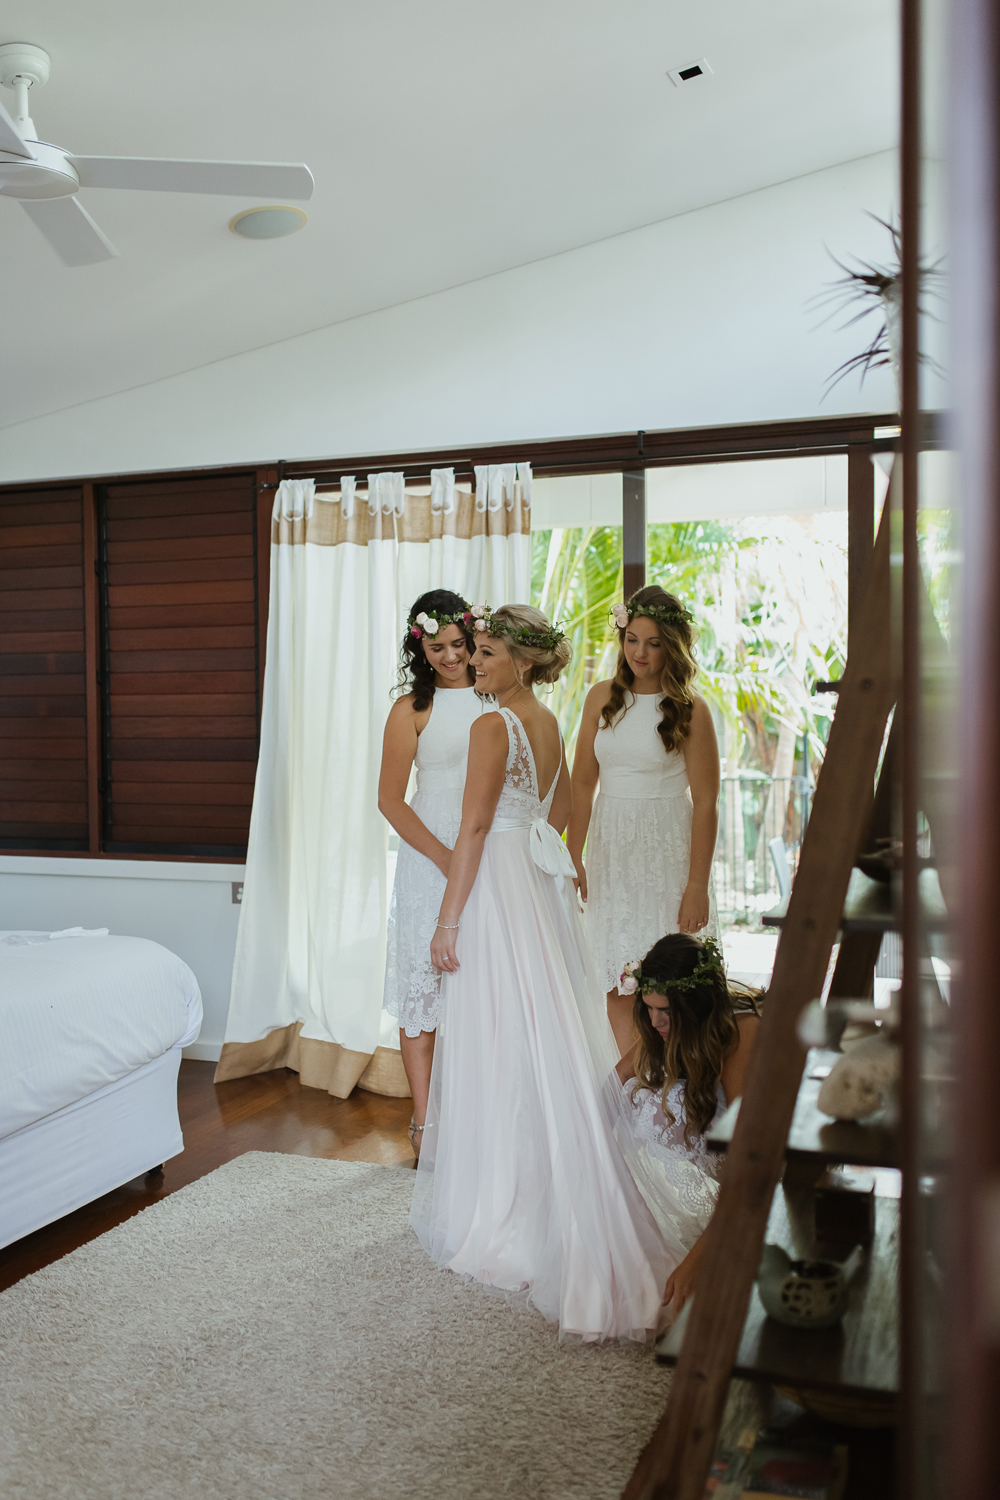 241-Byron-Bay-Wedding-Photographer-Carly-Tia-Photography.jpg